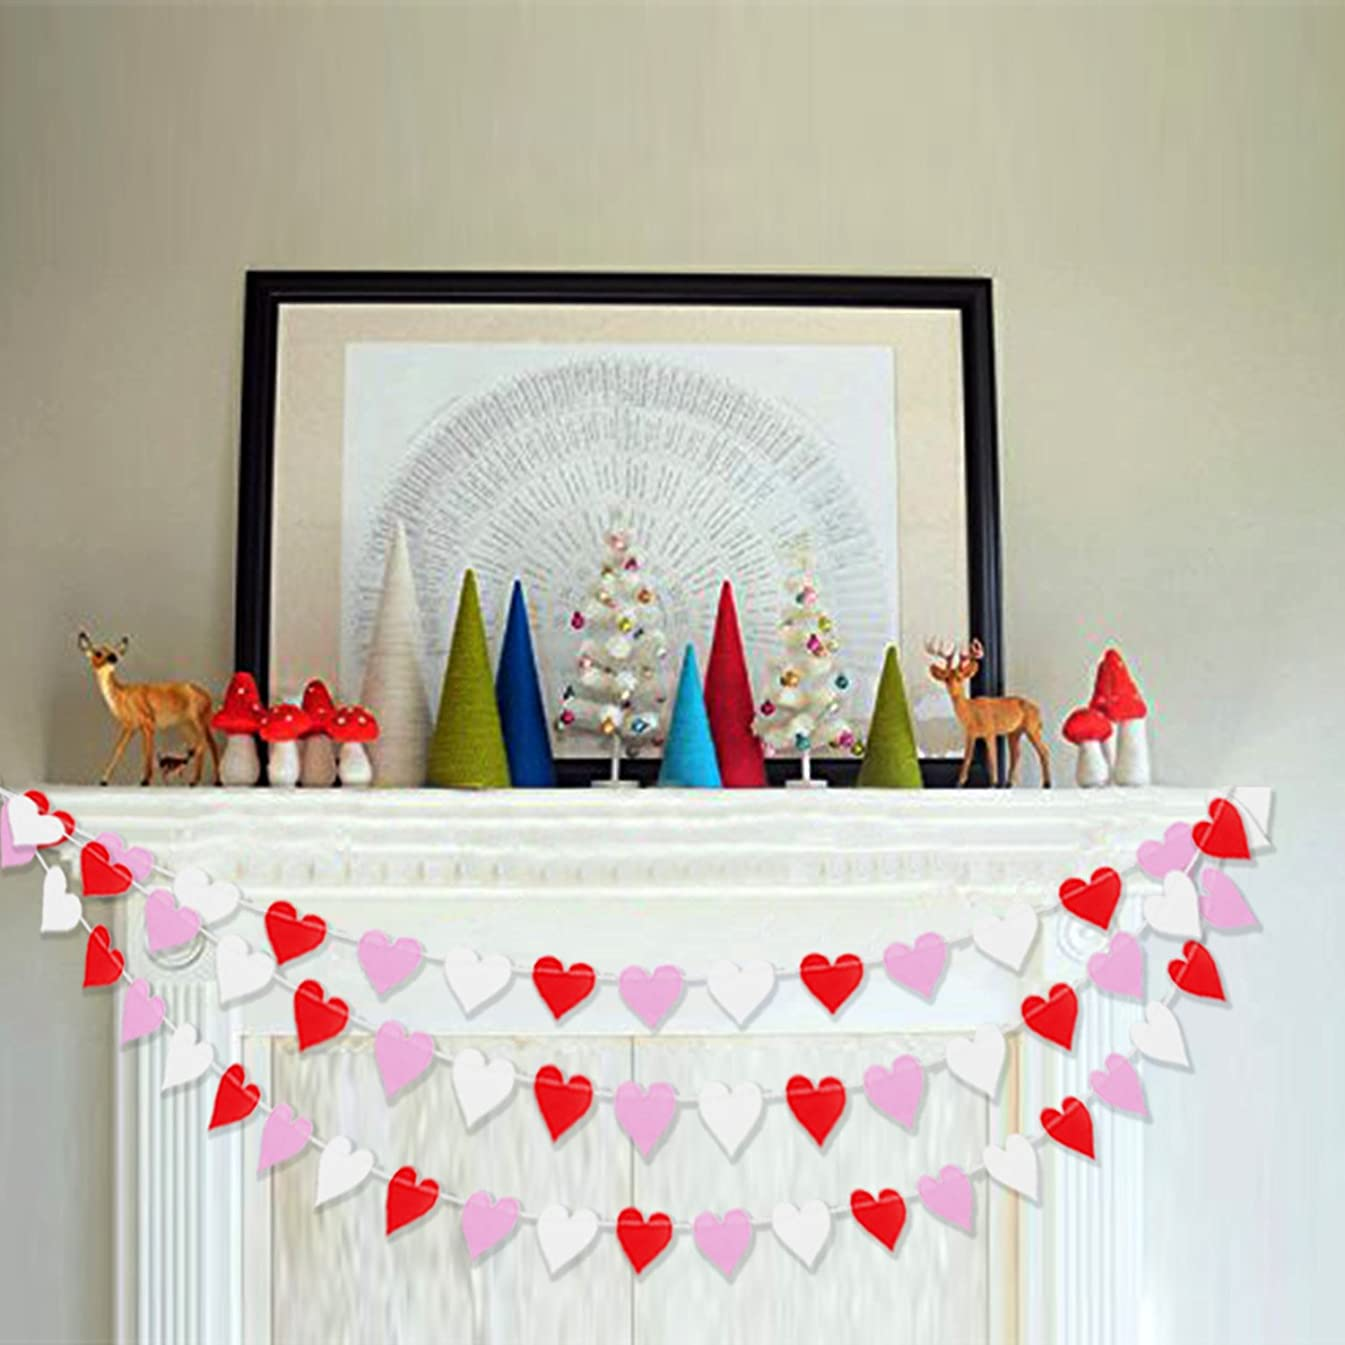 Colorful Heart Garland Bunting | Romantic Valentines Day Decoration?| Valentine Garland Banner | Bridal Shower, Engagement, Wedding Party Decorations | Home, Mantel Decor | Pack of 2 , 26.2 ft Total